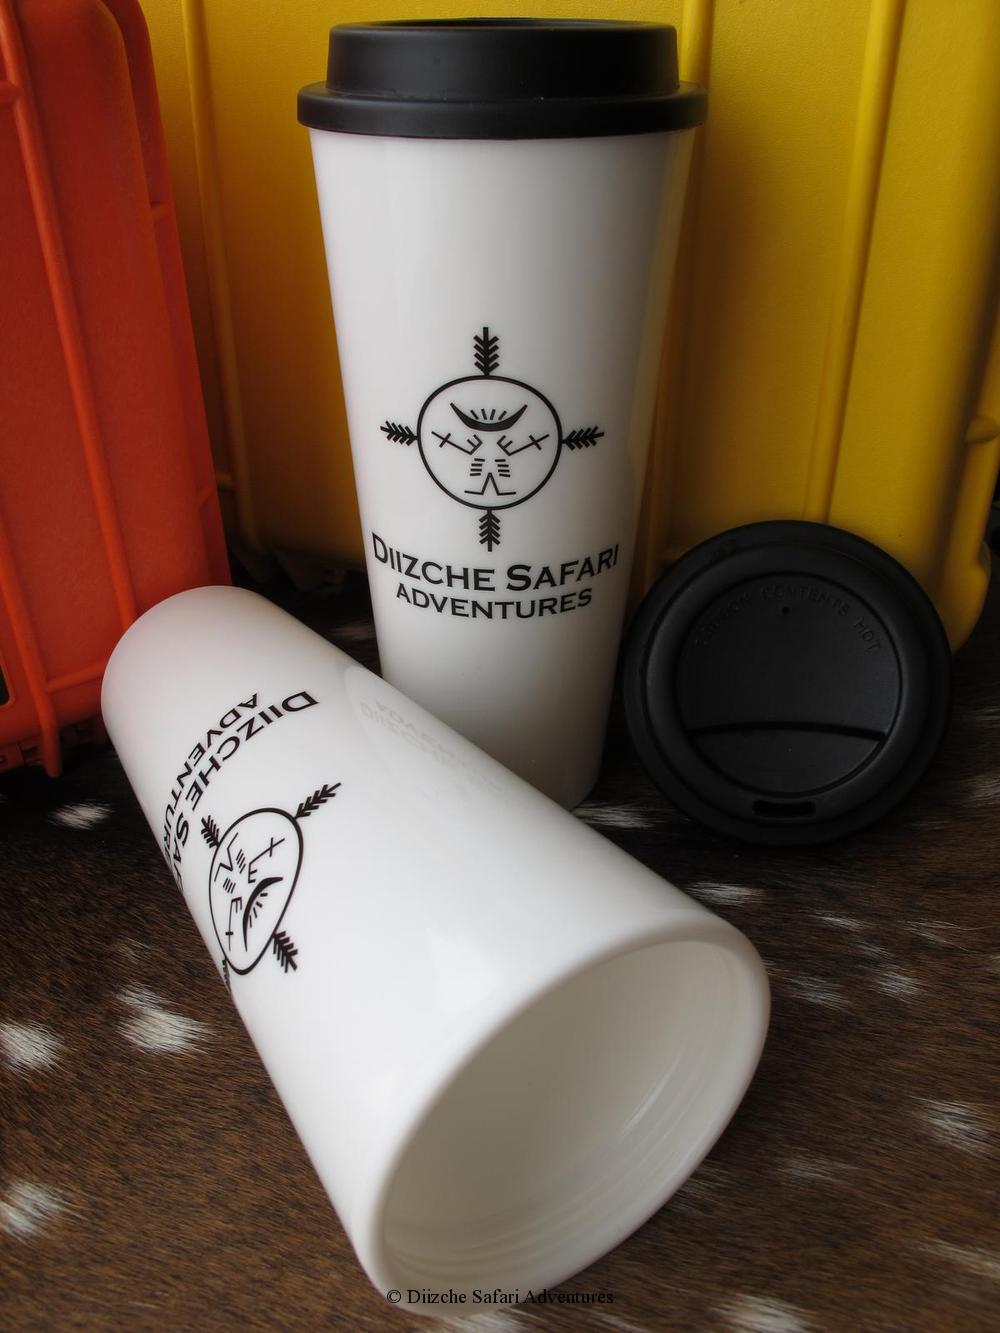 Heavy Duty 20 Oz. White Plastic Cup2goTwo Black Diizche Safari Adventures Logos 20 Oz. Heavy Duty Cup2go Dual Logo Design Diizche Safari Adventures, watch cover, cap, medicine bag Diizche Safari Adventures, ultimate bore protection